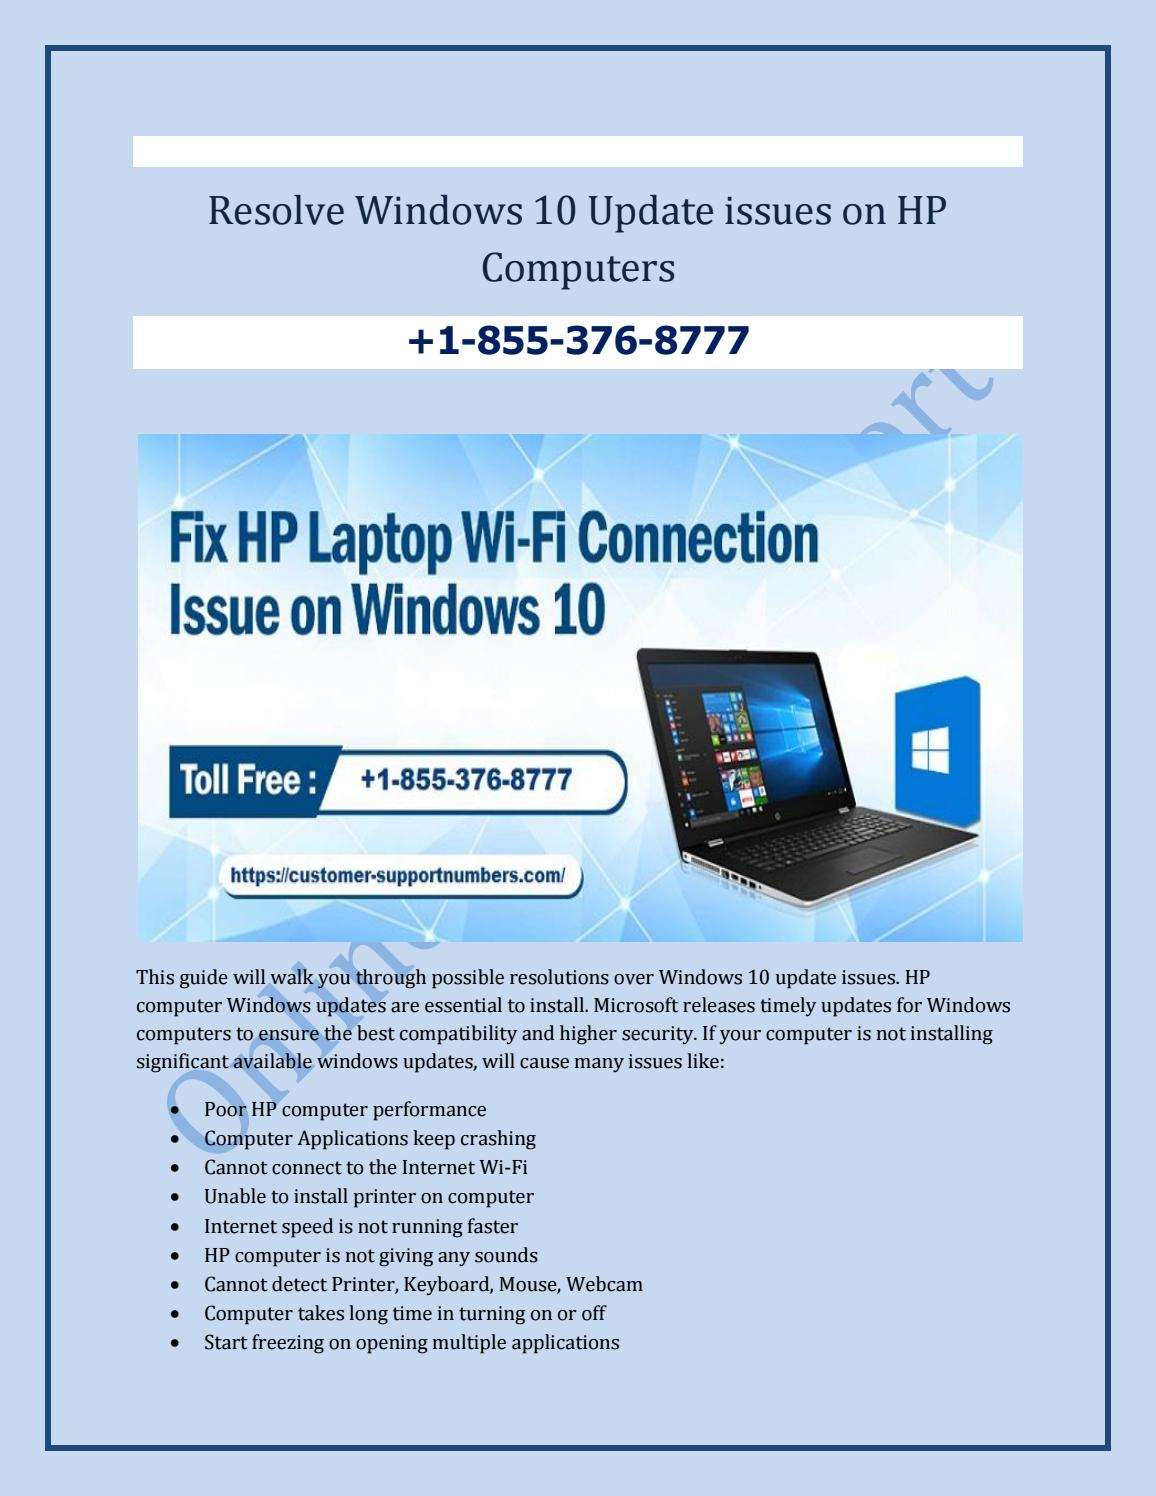 Resolve Windows 10 Update issues on HP Computers by Alina